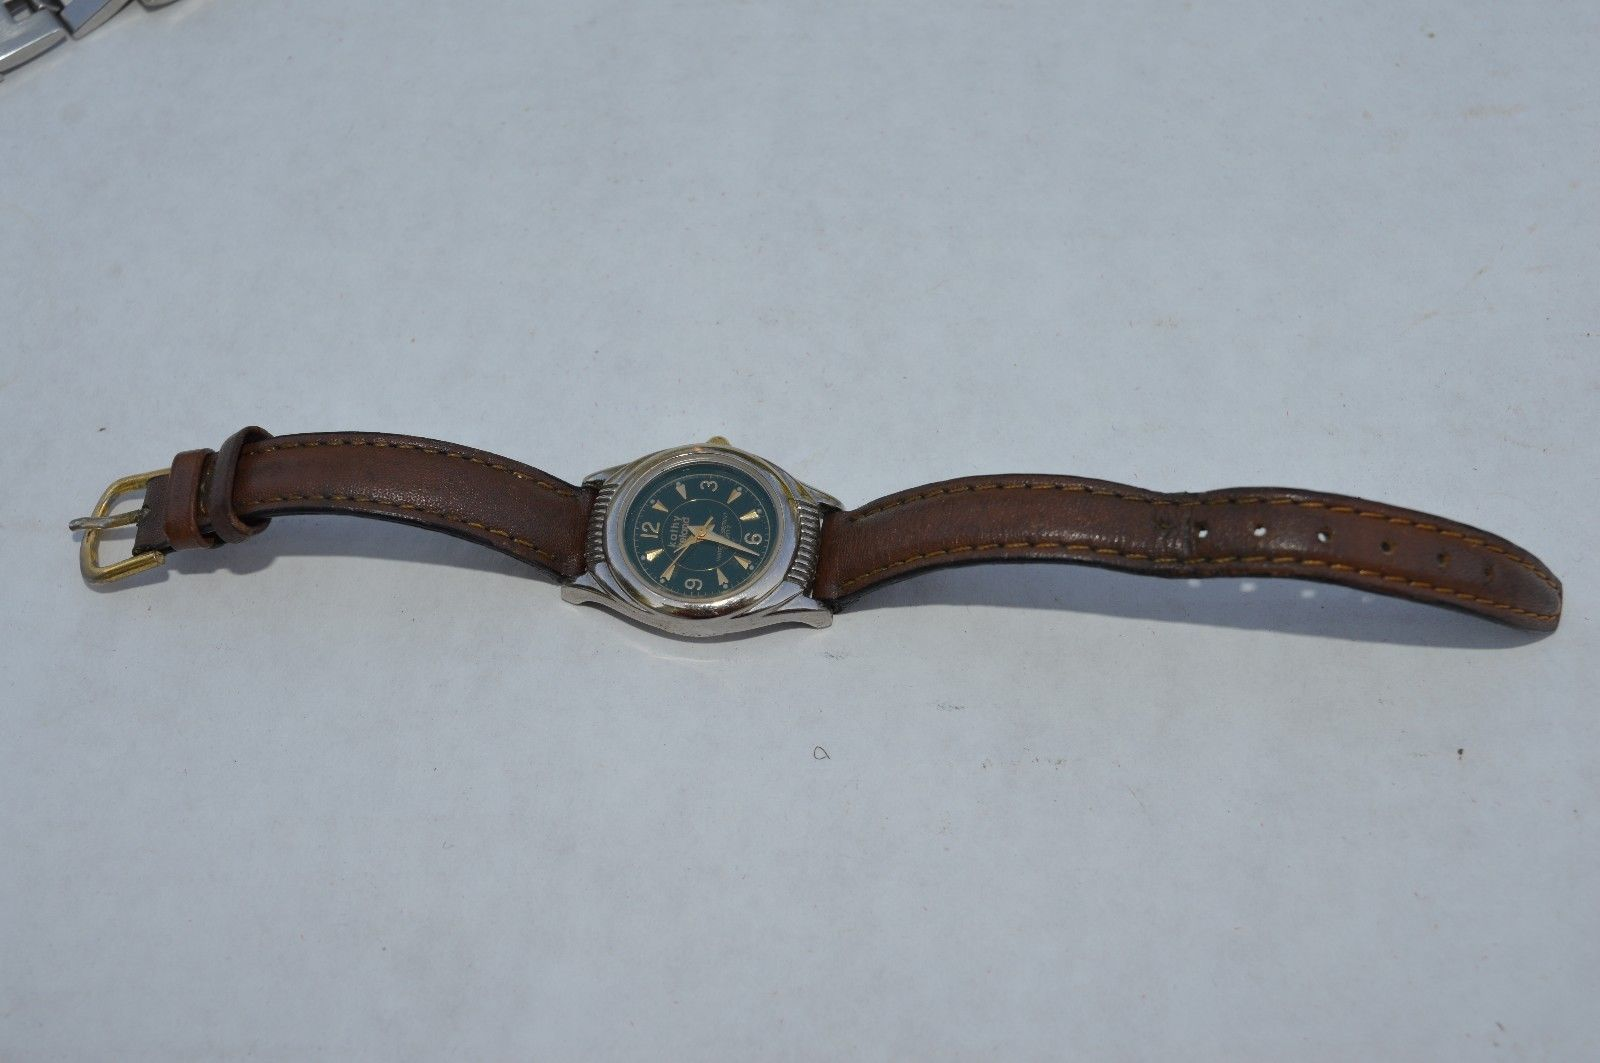 Vintage Kathy Ireland Green dial Quartz Watch Leather band, Keeping time